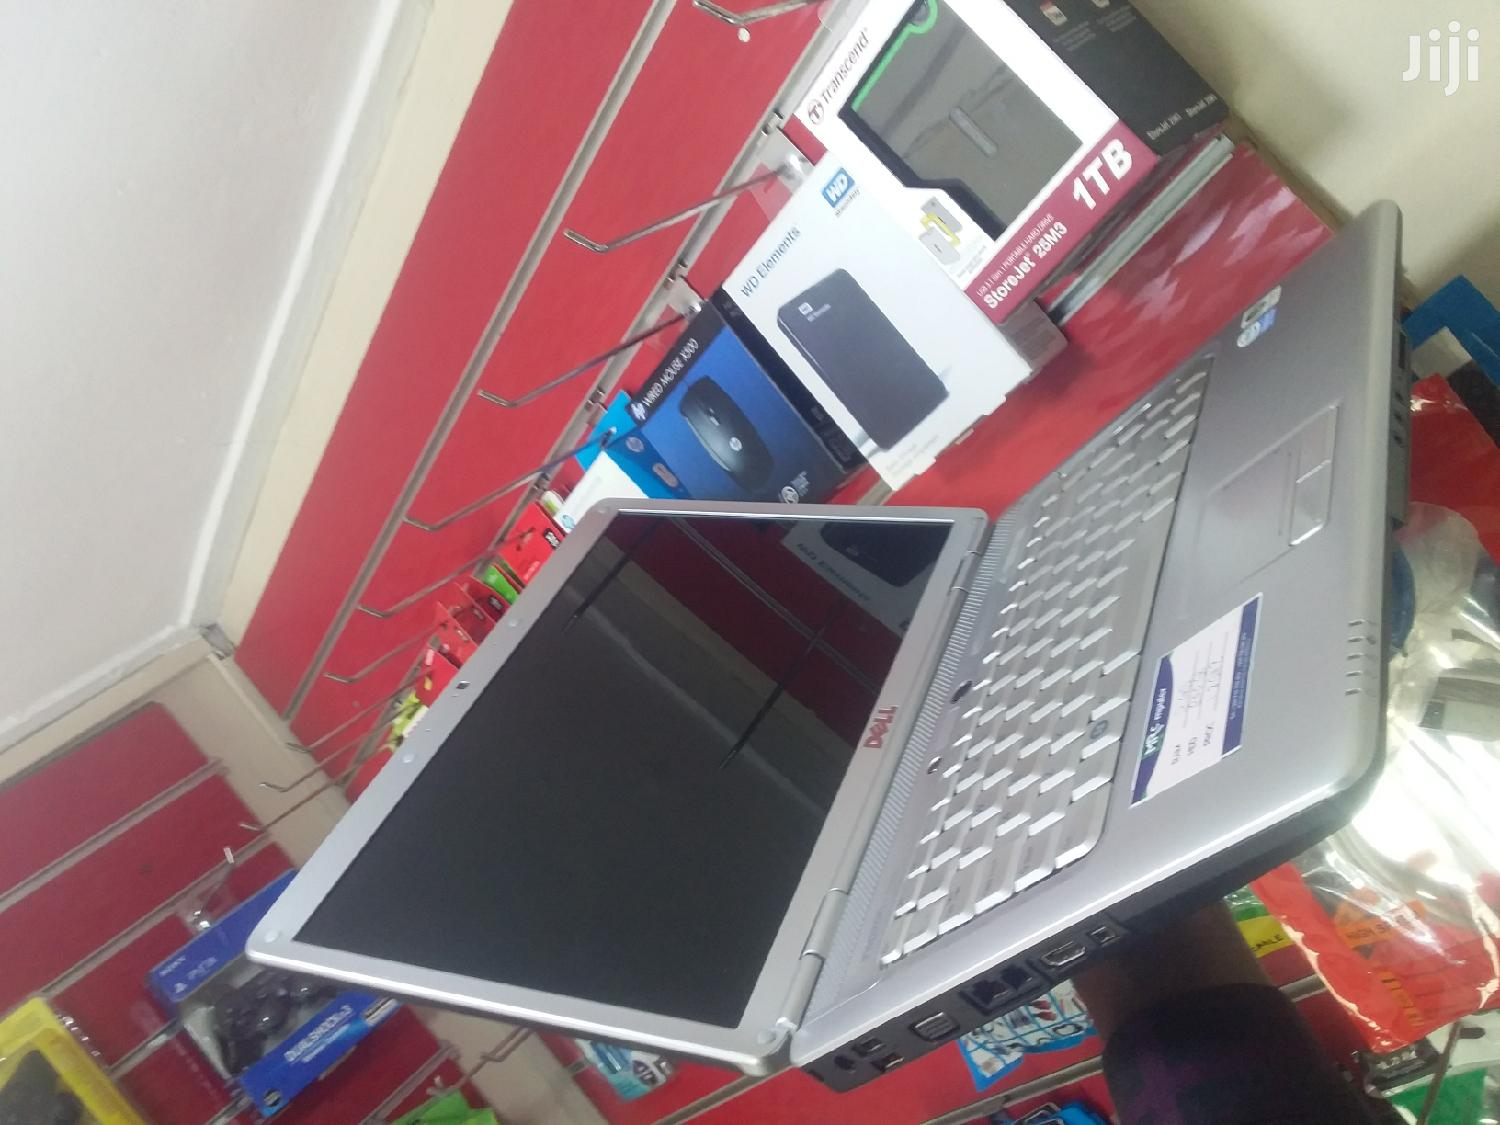 Archive: Laptop Dell Inspiron 1525 2GB Intel Celeron HDD 250GB